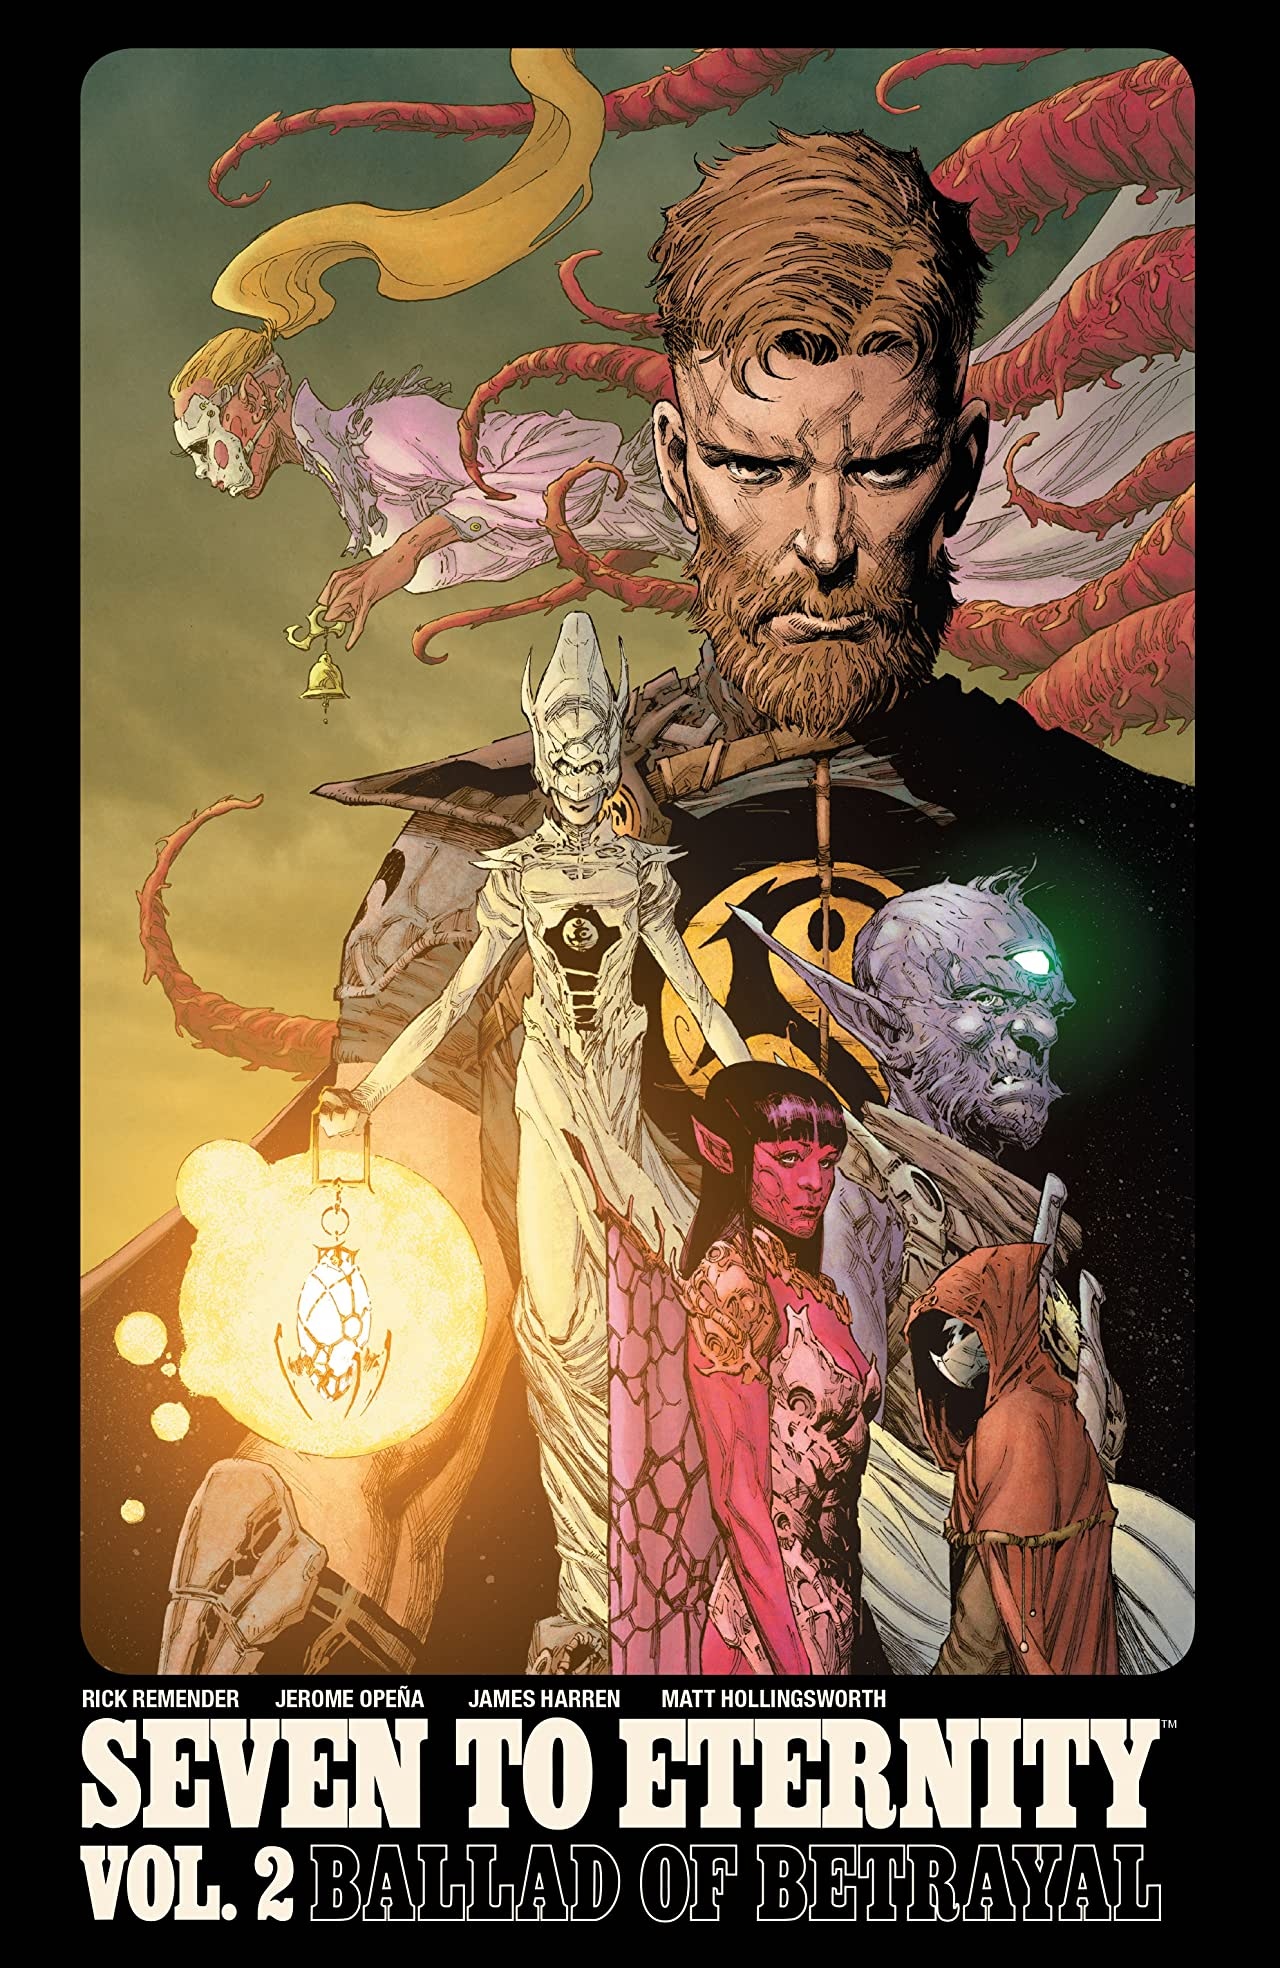 Seven To Eternity Vol. 2